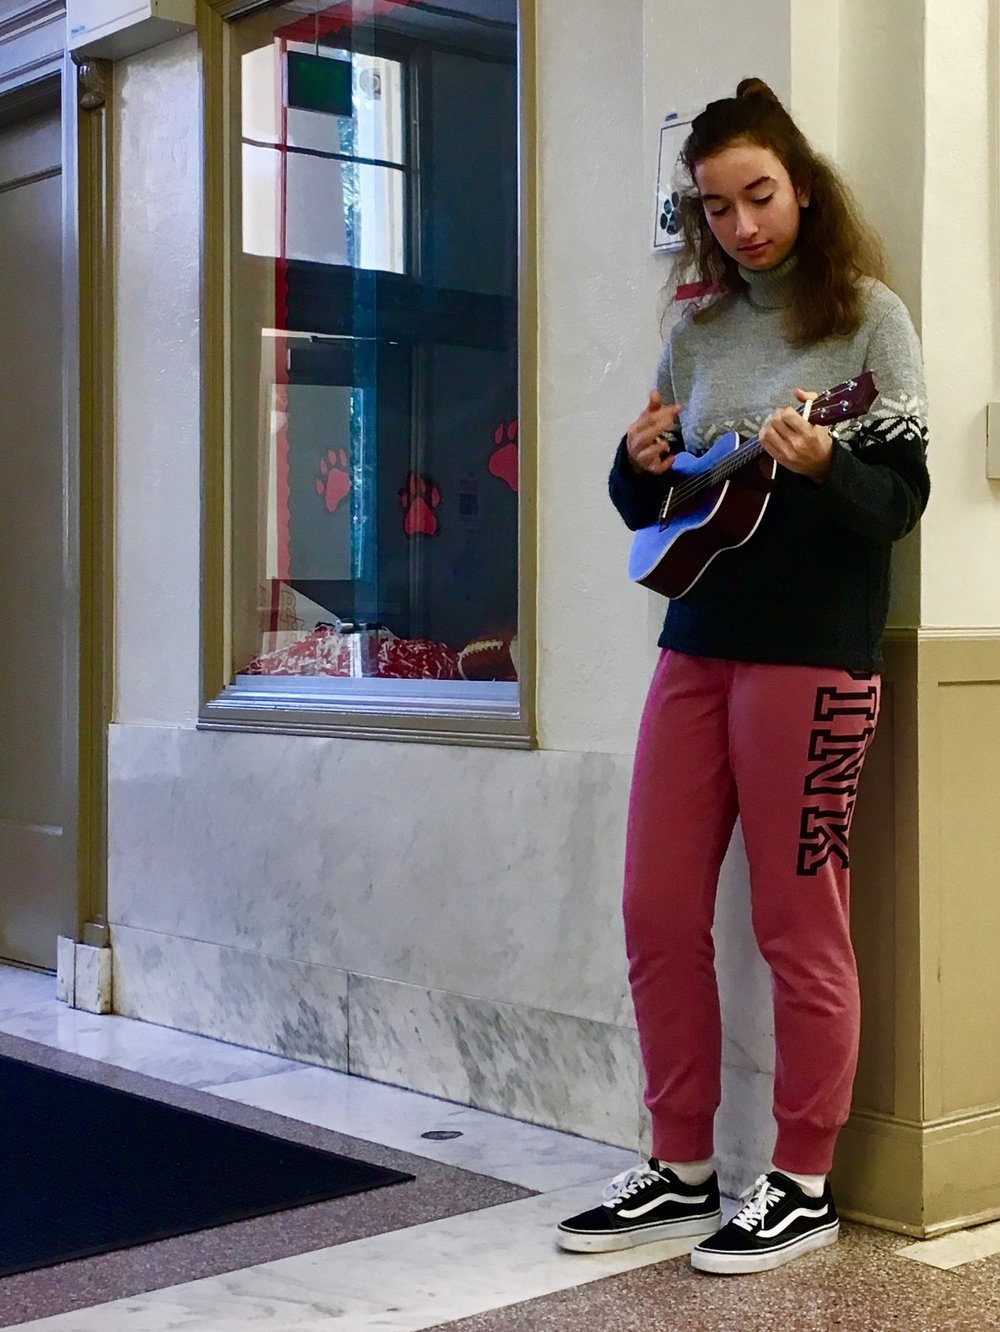 Lily Page jams out on the ukulele for fun.